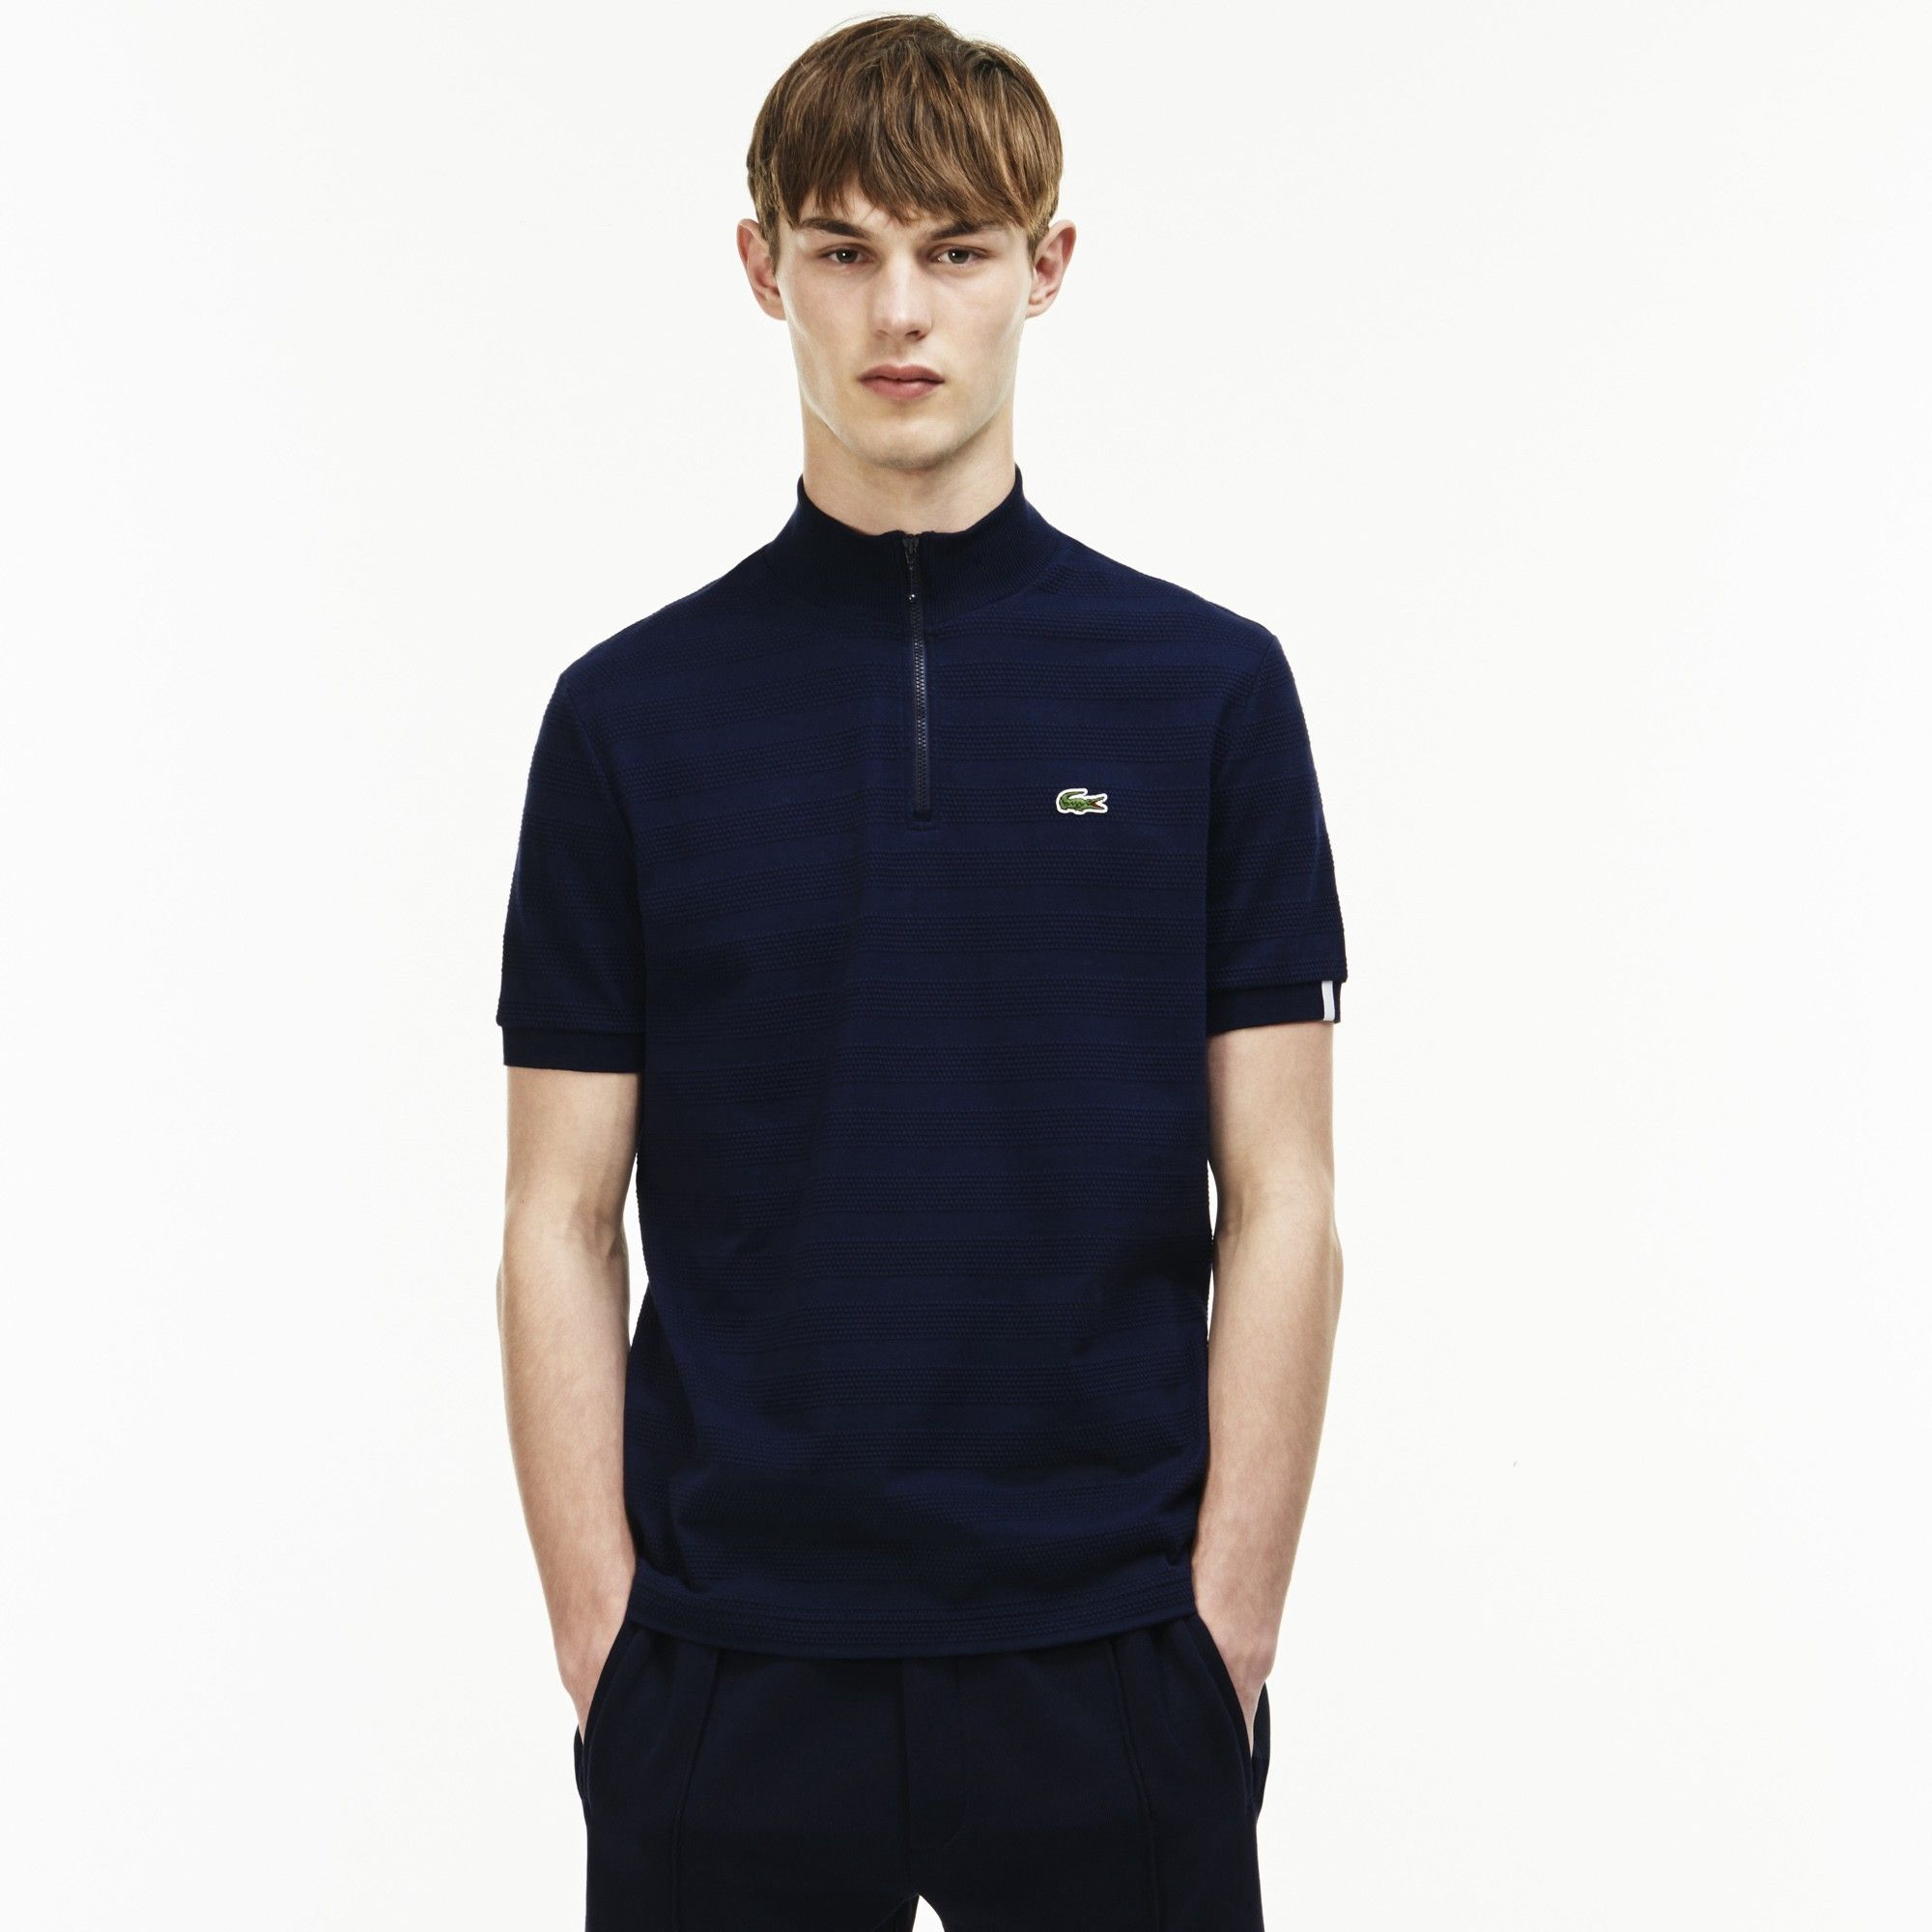 717a243a LACOSTE Men's LIVE Slim Fit Zip Striped Honeycomb Jersey Polo - NAVY ...